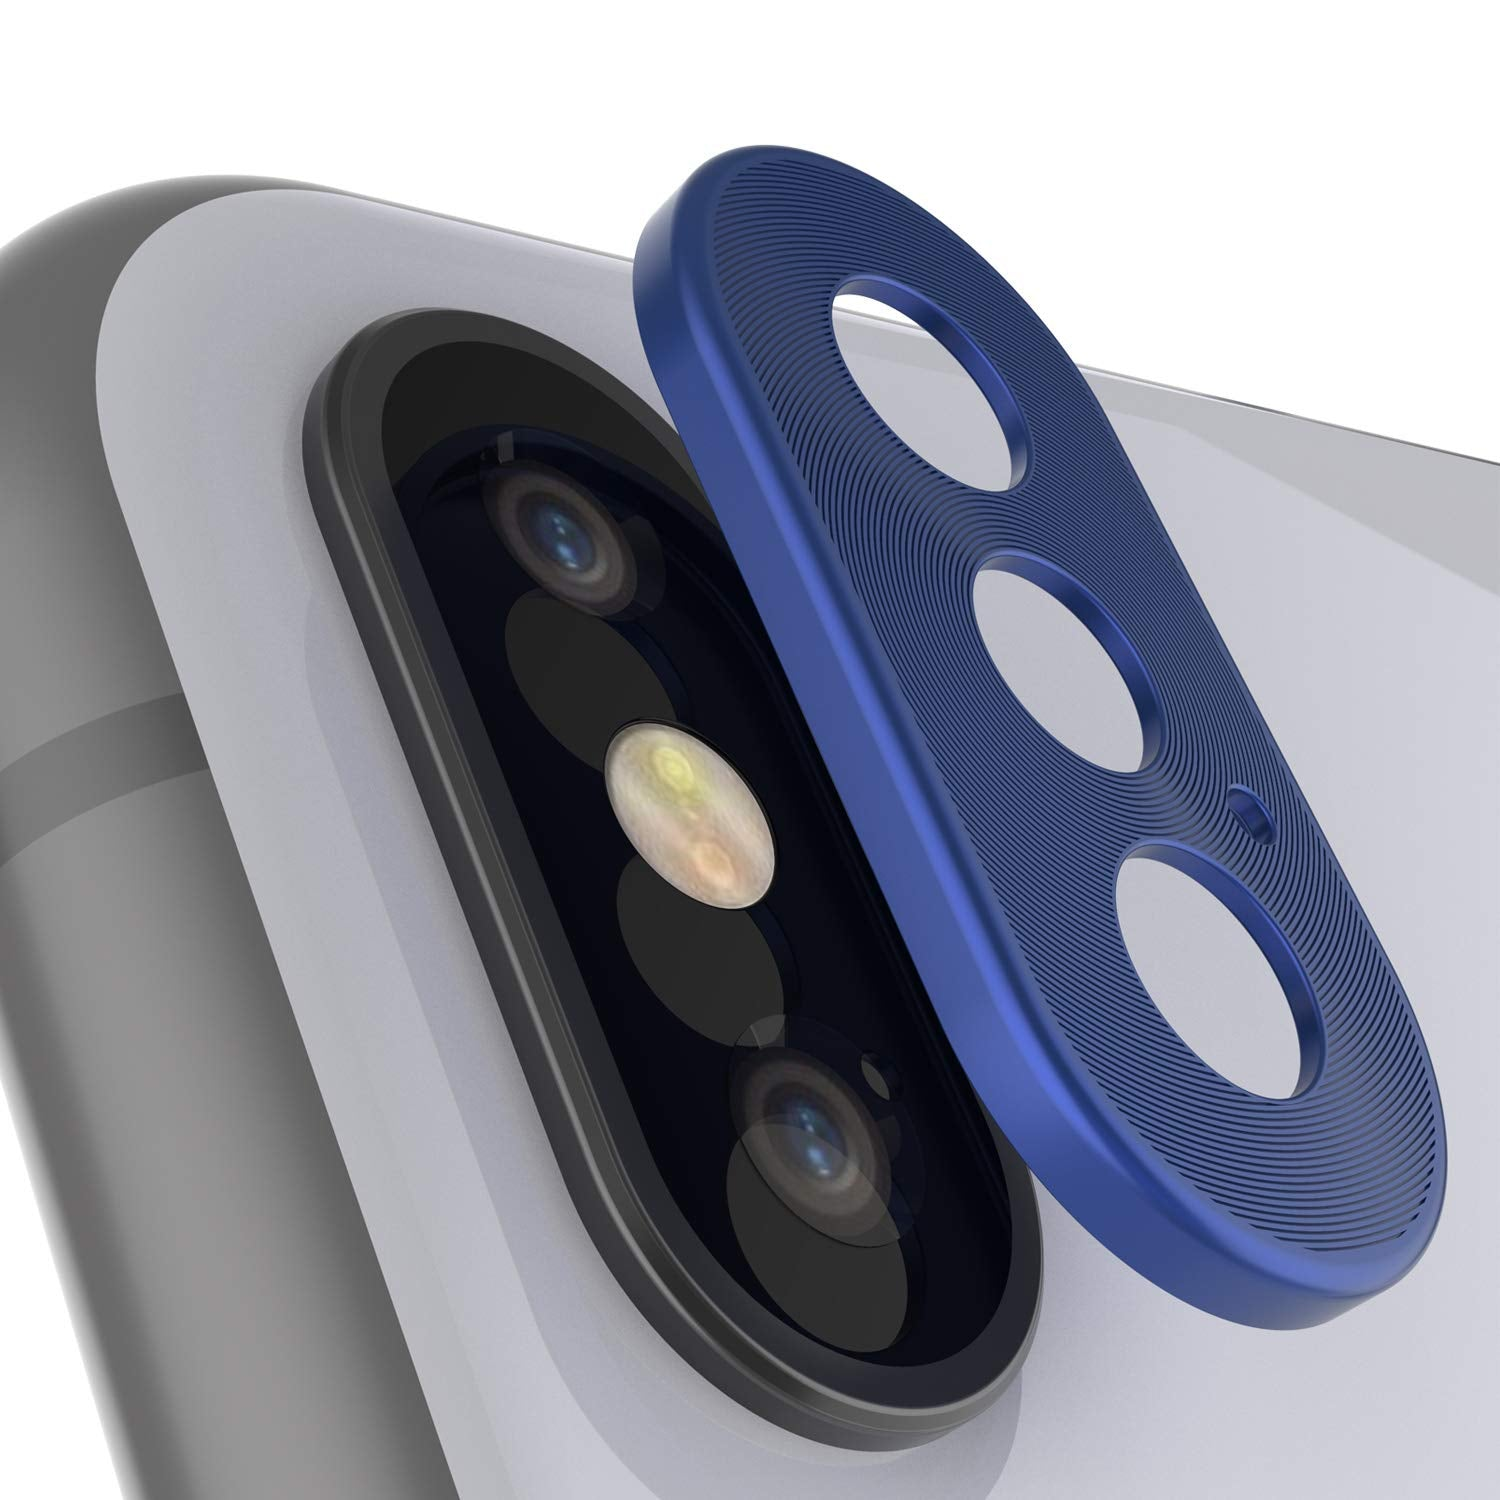 Punkcase iPhone XS Camera Protector Ring [Blue]